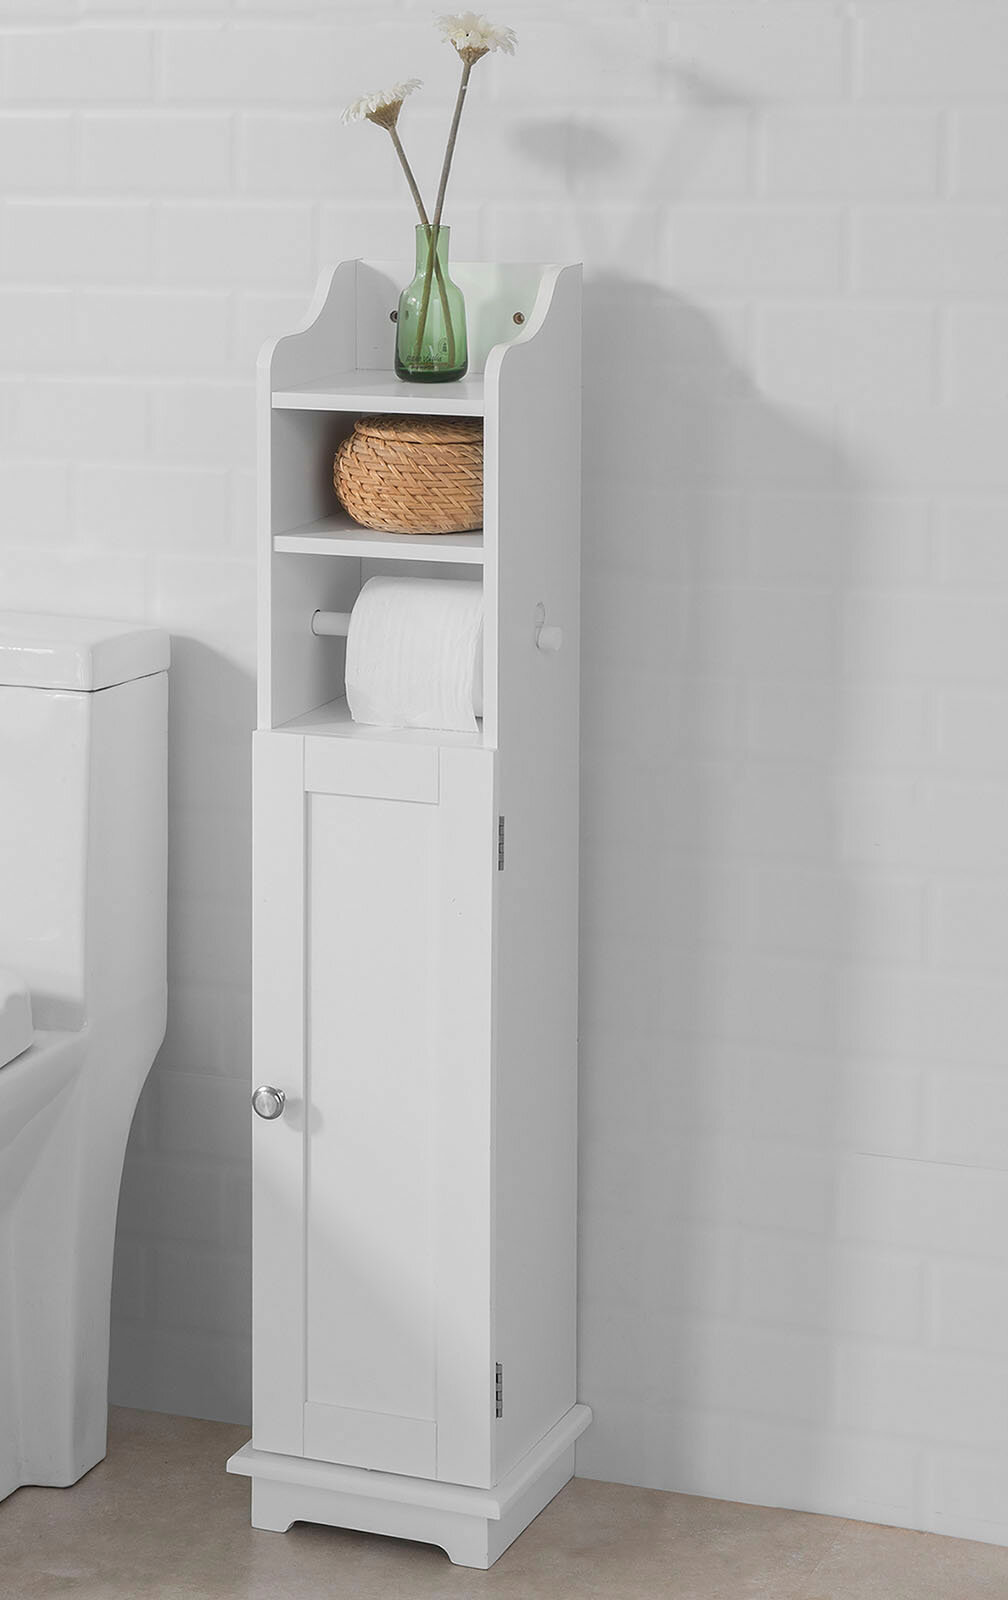 Brambly Cottage Knollview 20 X 100cm Free Standing Bathroom Cabinet Reviews Wayfair Co Uk